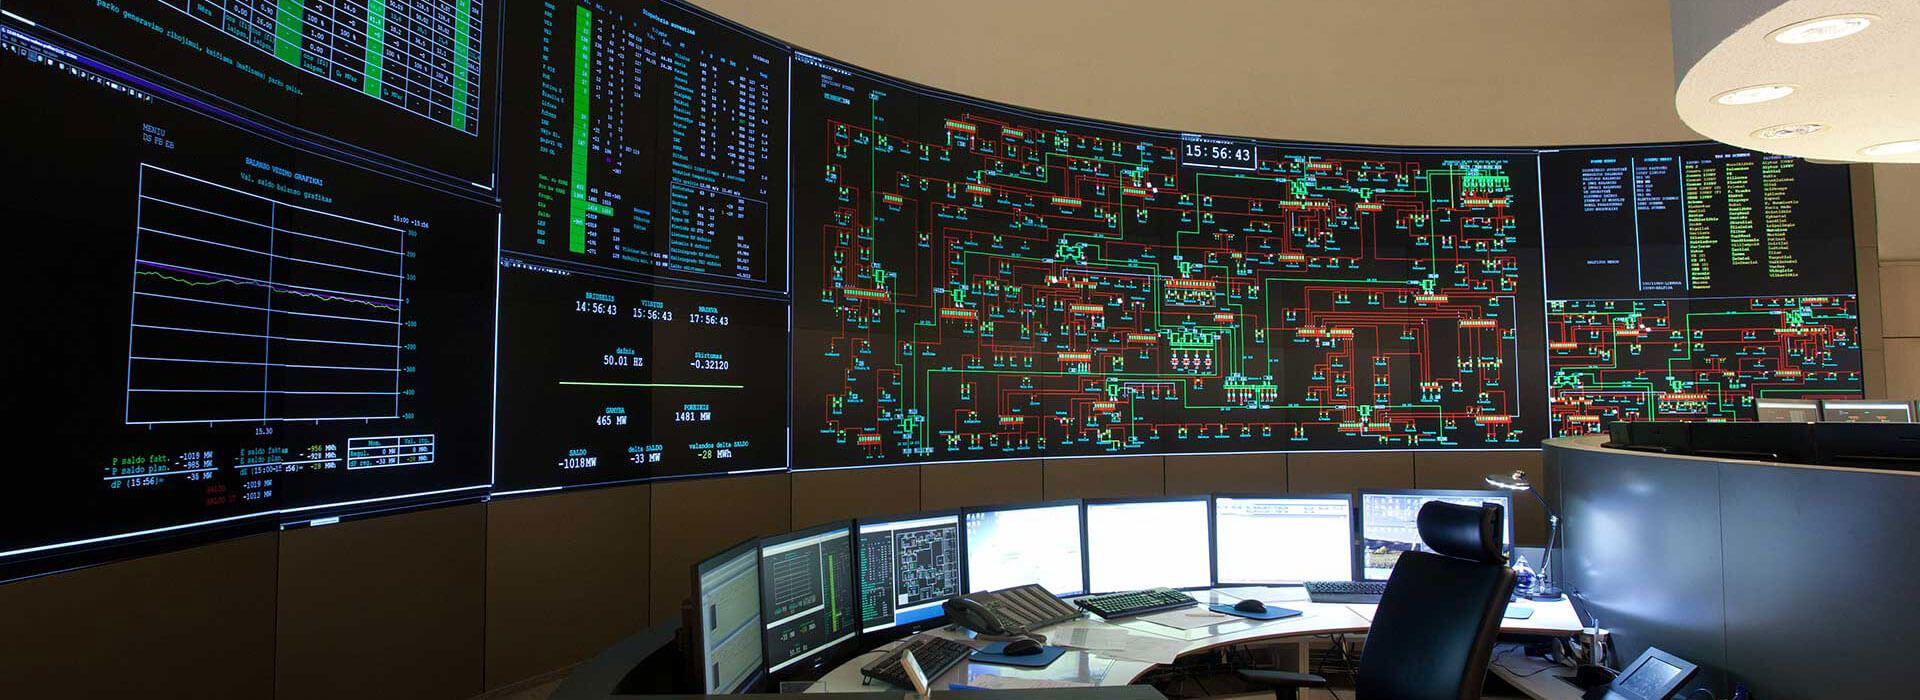 Videowall Controller in Malaysia | Fix Type, Modular Matrix